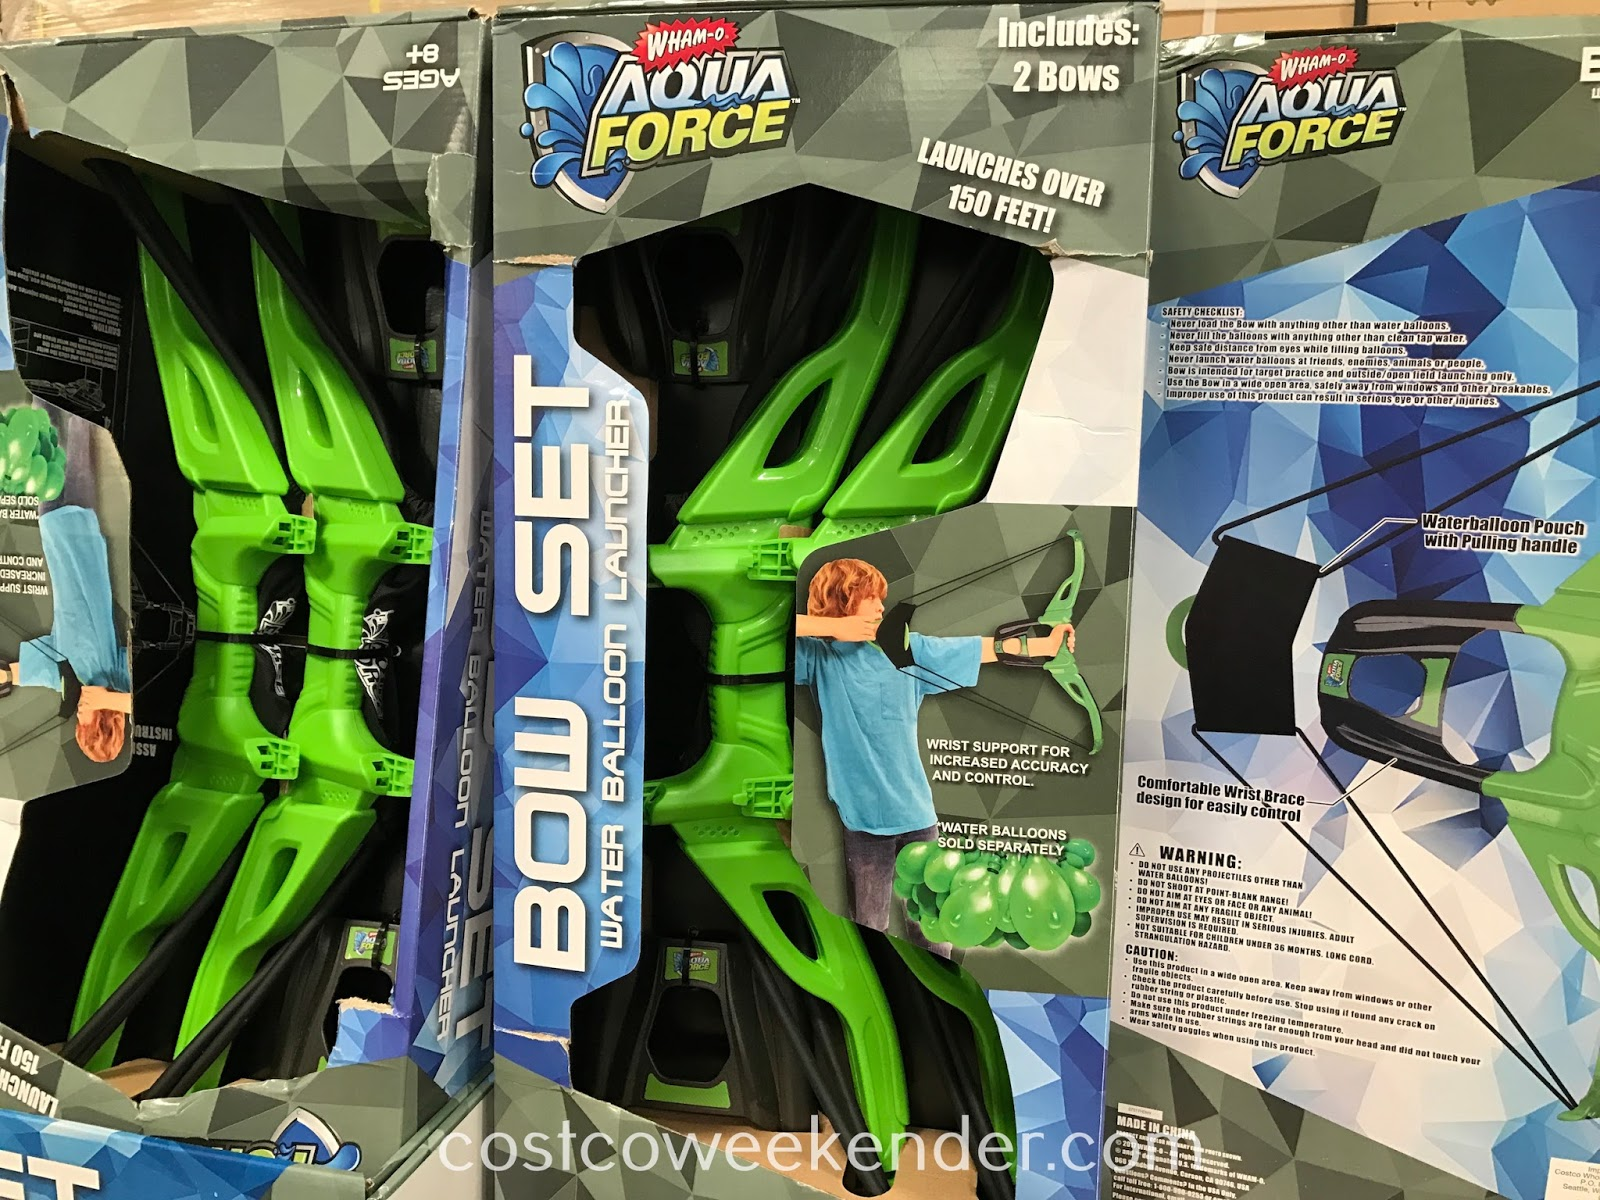 Have fun while cooling down with the Wham-O Aqua Force Water Balloon Launcher Bow